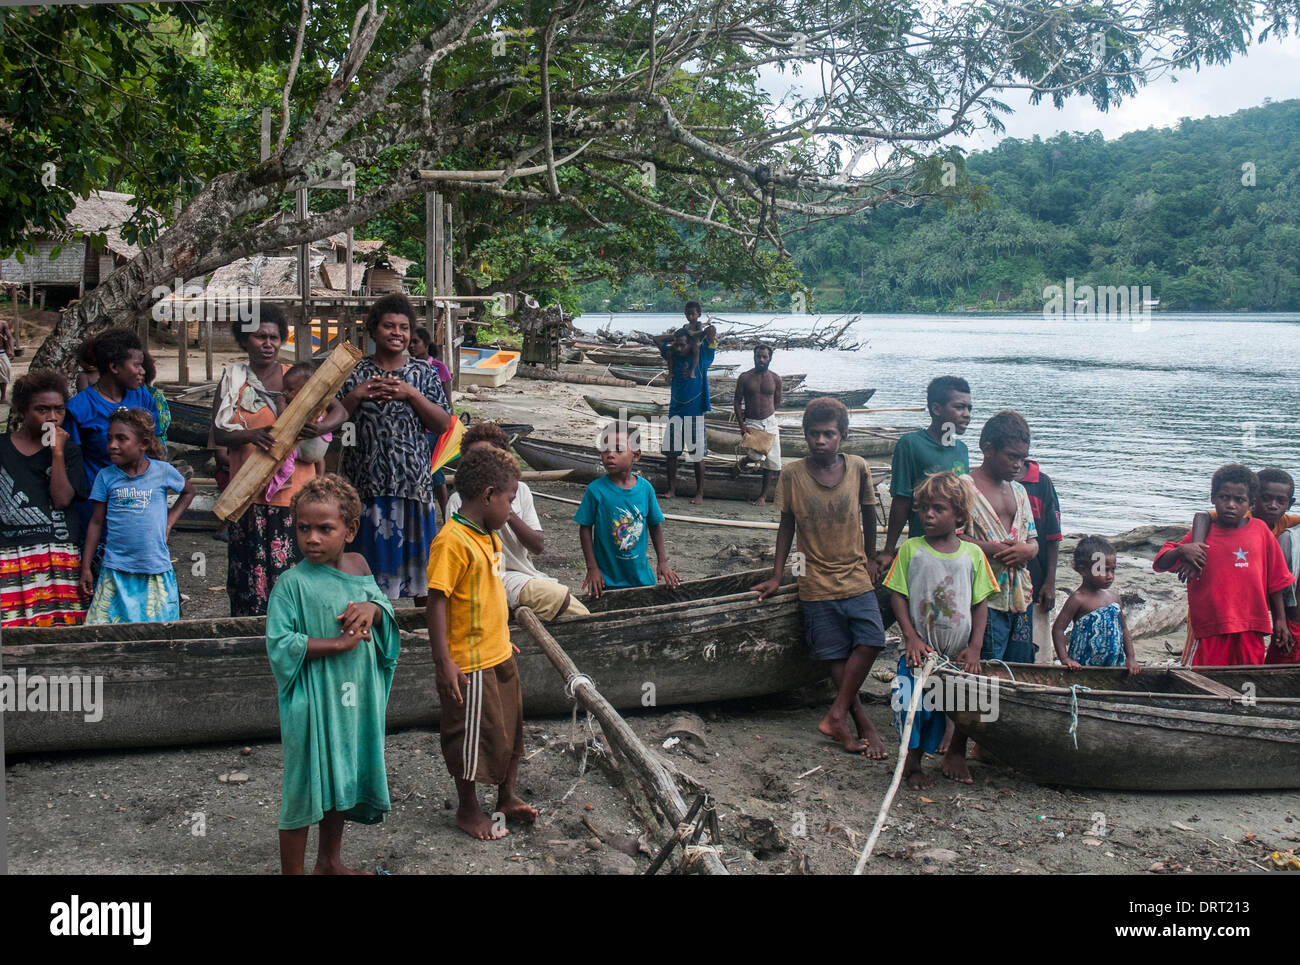 Melanesian villagers at anuta island makira province greet melanesian villagers at anuta island makira province greet visitors from an expedition cruise ship thecheapjerseys Image collections